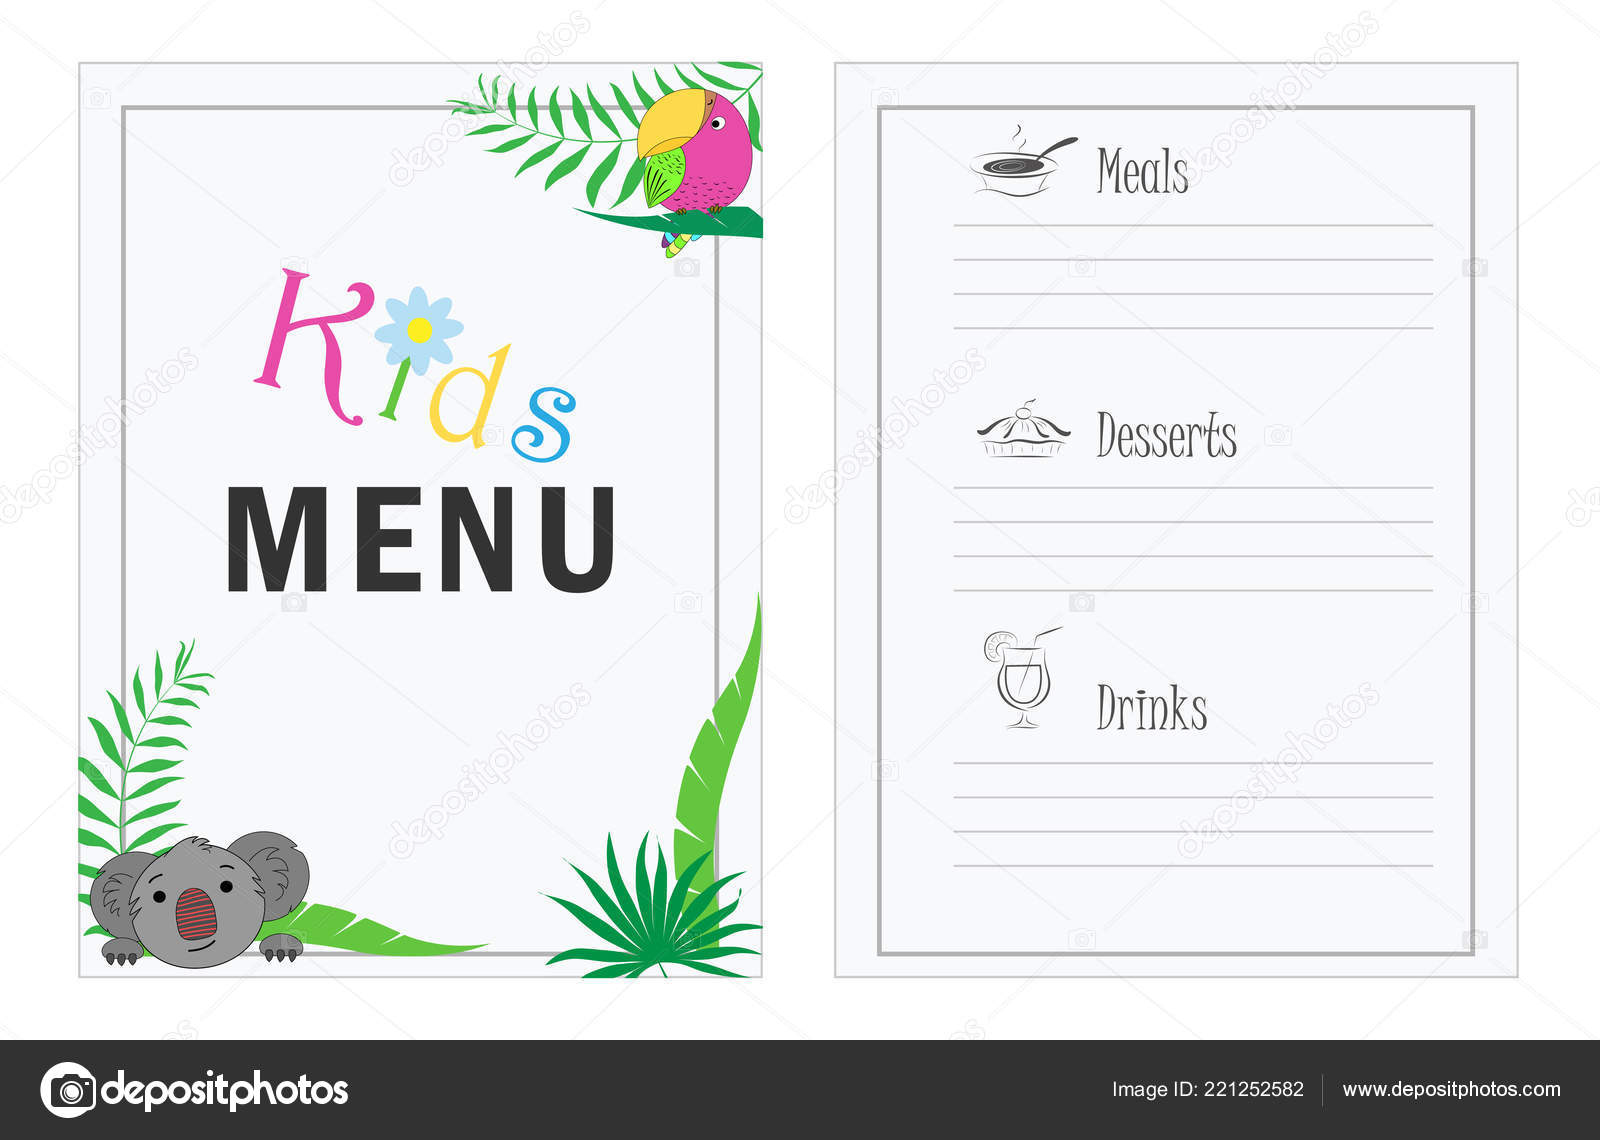 Children Menu Template Cafe Menu Design Kids Menu Children Palm